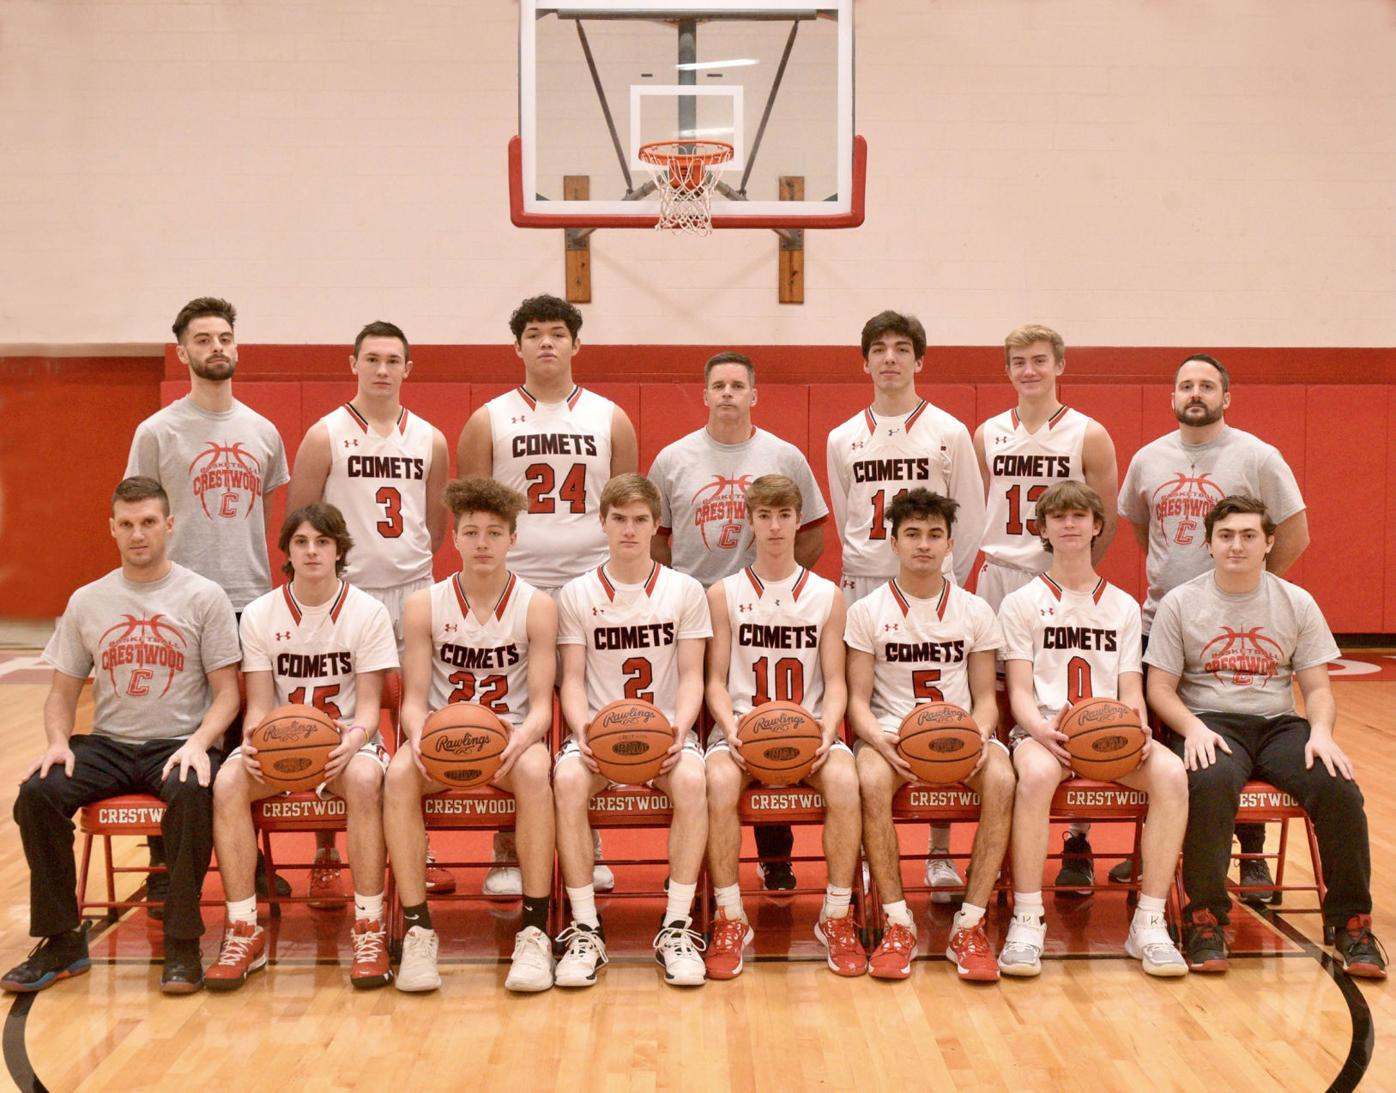 WVC BOYS' BASKETBALL: Comets wrap up second straight WVC Division 1 title